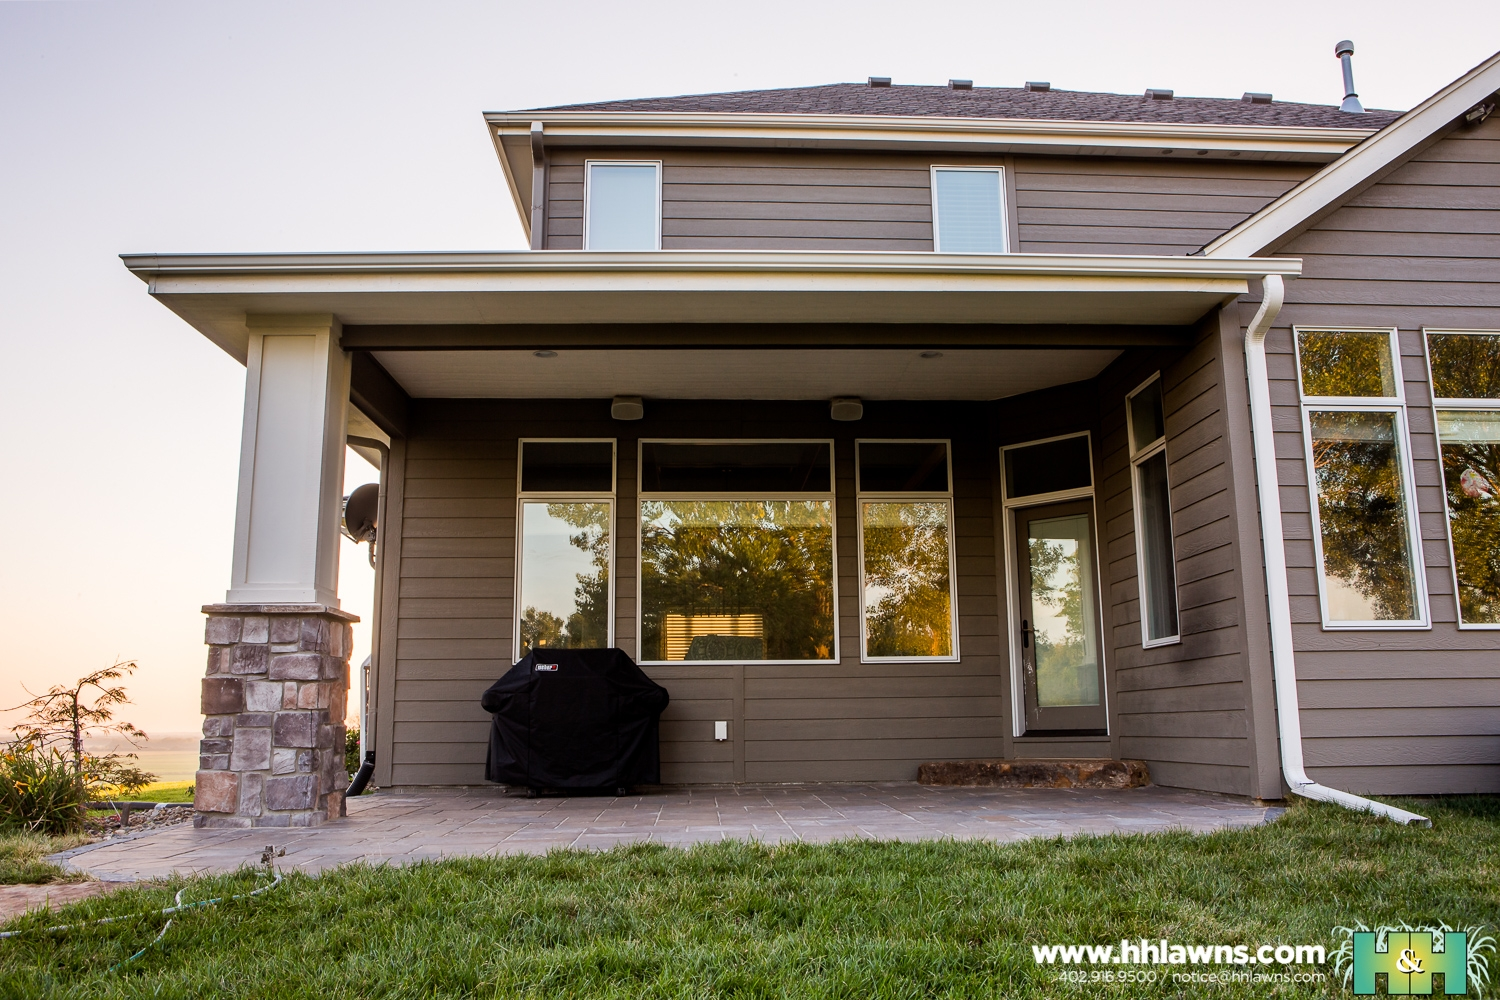 Jason and Ashley Kassmeier Outdoor Patio Landscape Project 2016 (H&H Lawn and Landscape)